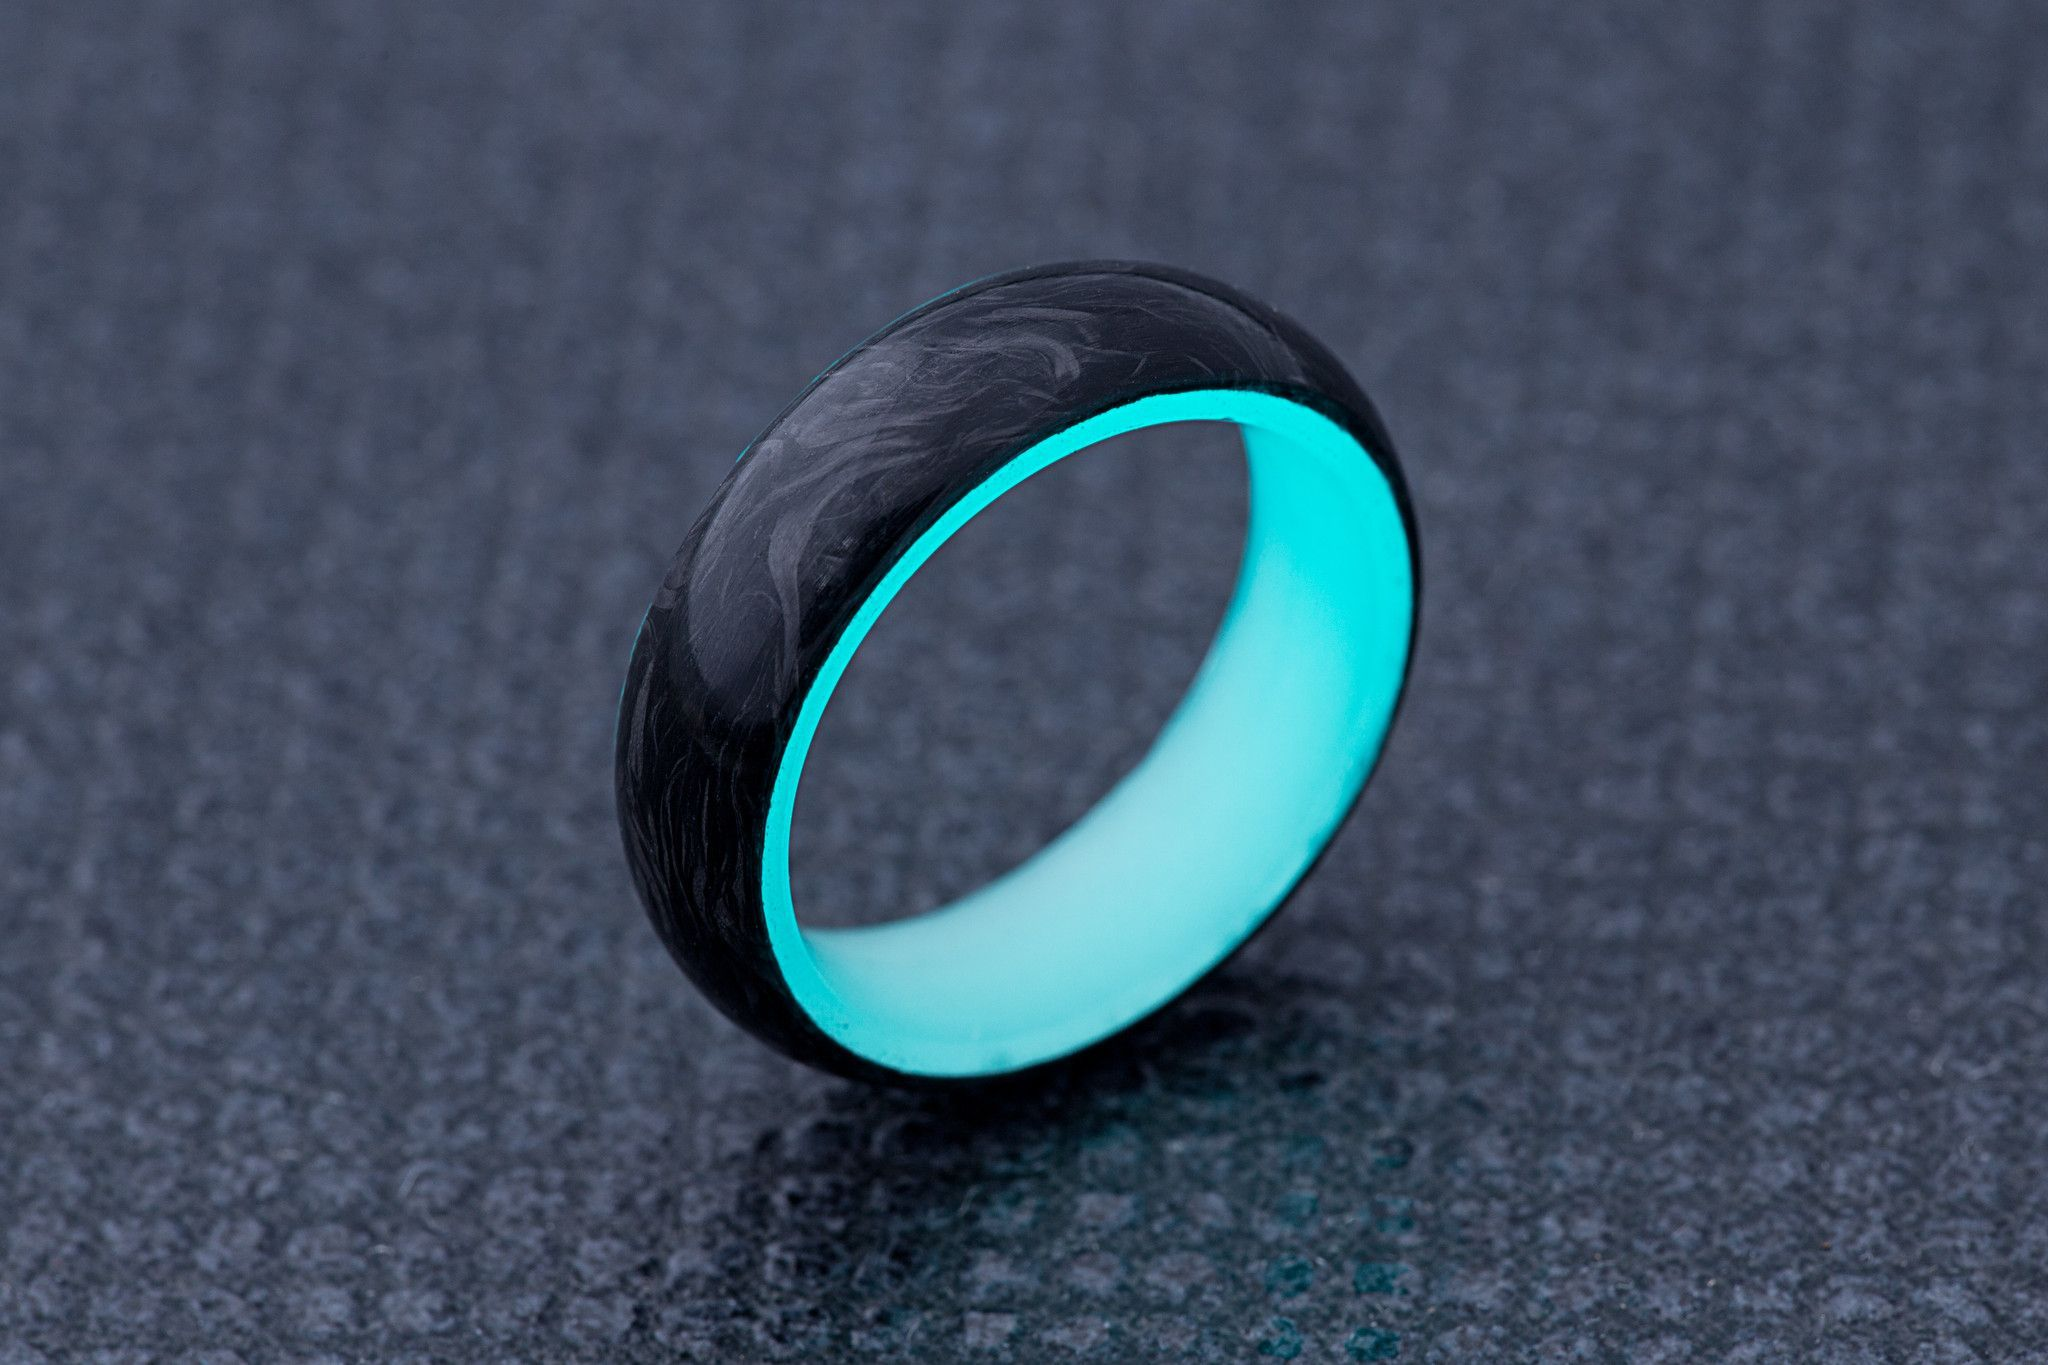 rings s product ring emporio fiber jewelry wedding and carbon armani normal lyst iconic mens gallery stainless men black steel